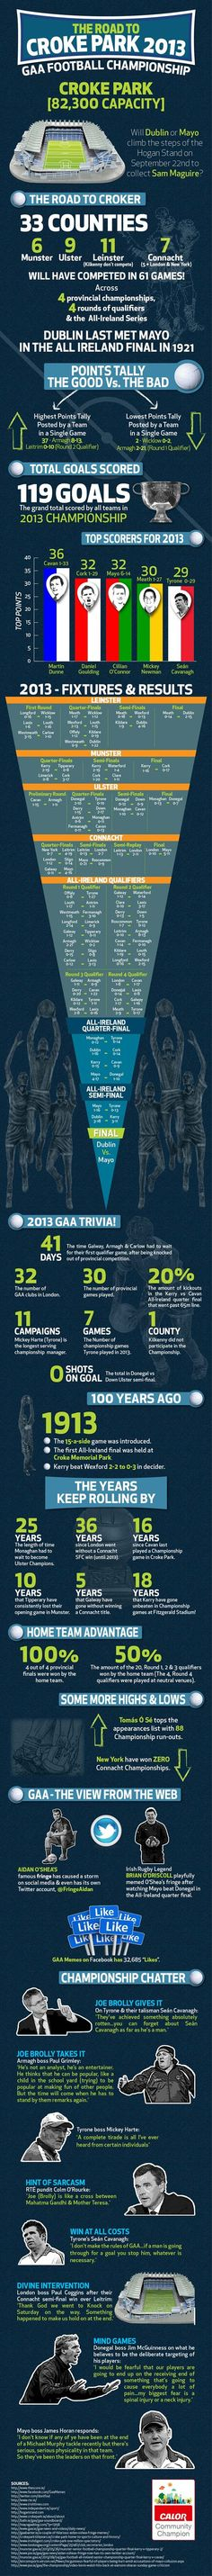 The Road To Croke Park GAA Football Championship. All The 2013 Gaelic Football Championship In One Giant Infographic. Croke Park, Irish Culture, Championship Game, My Favorite Image, Im Trying, Trivia, Growing Up, Ireland, Football